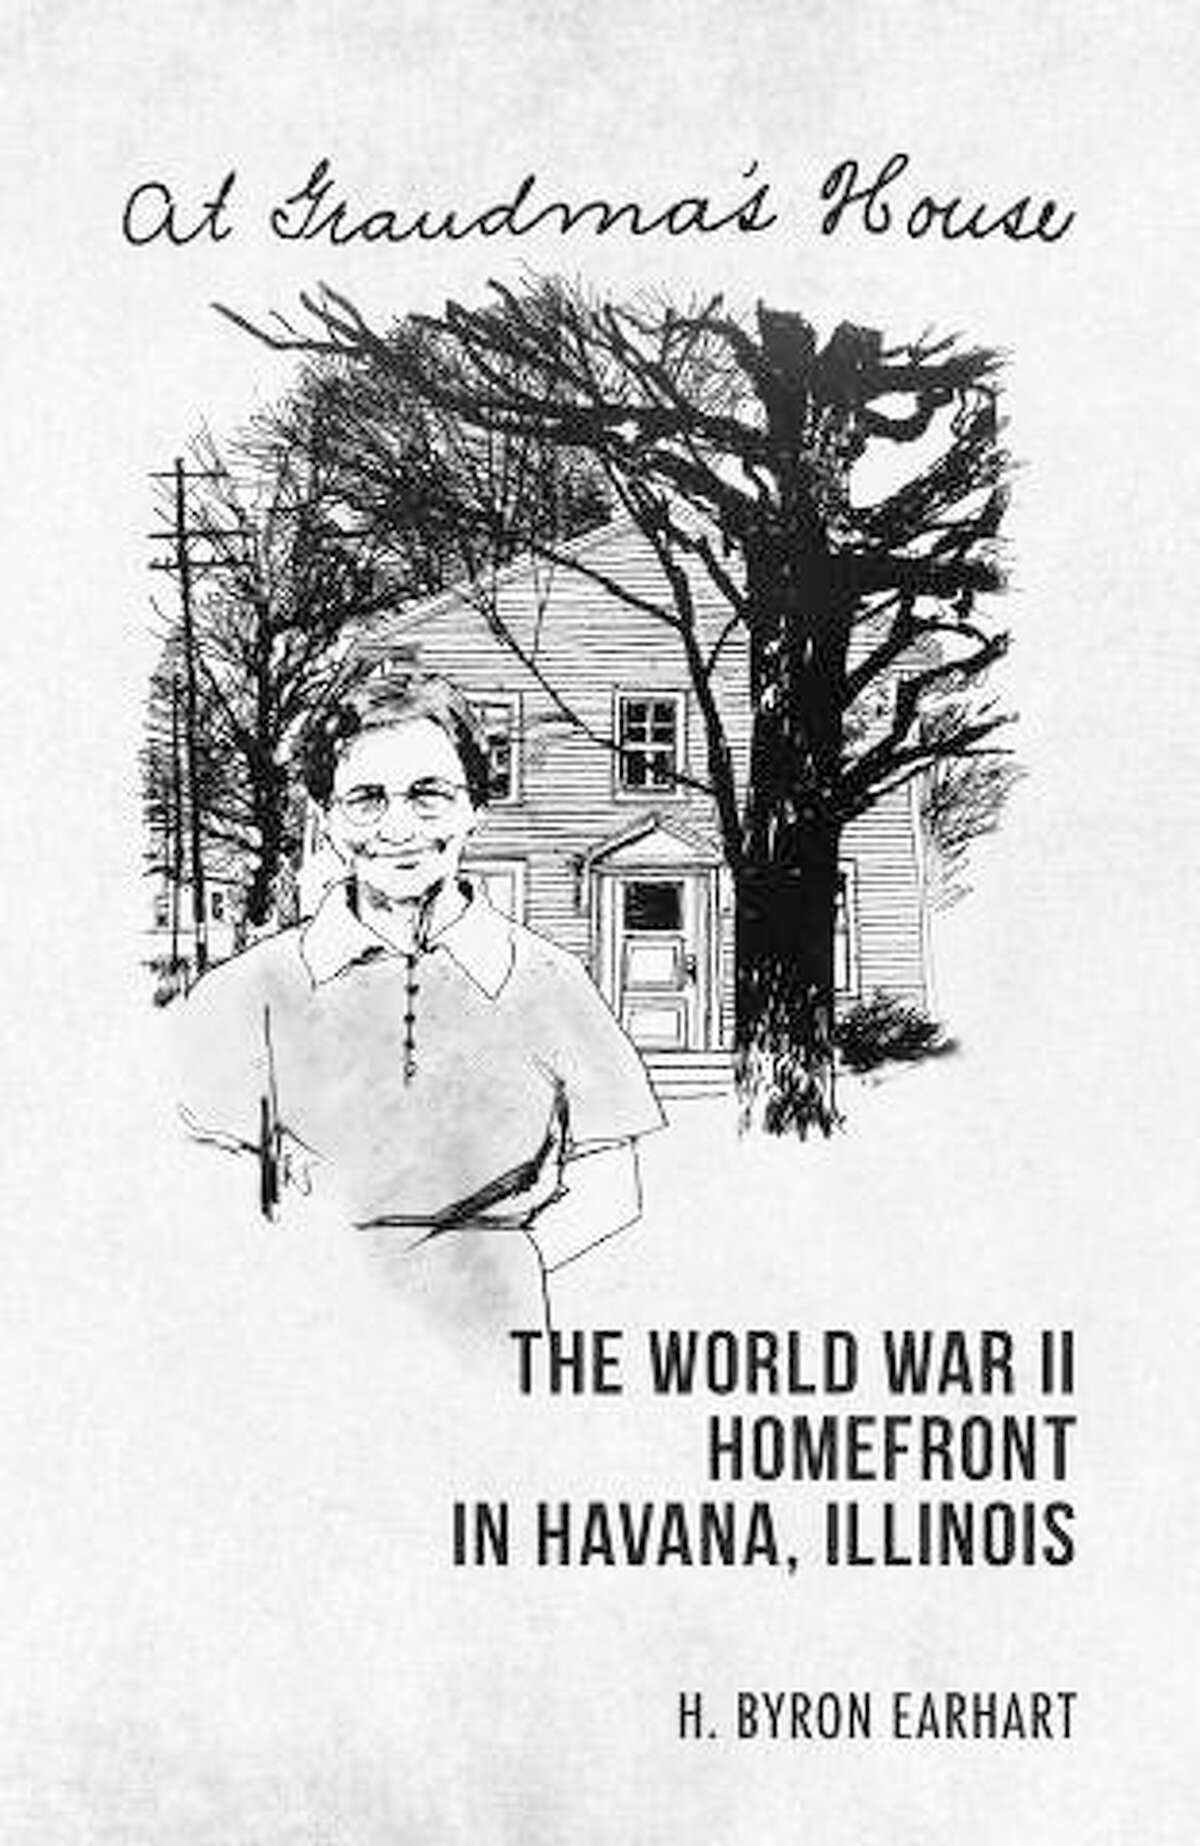 """""""At Grandma's House: The World War II Homefront in Havana, Illinois,"""" by H. Byron Earhart, published by Southern Illinois University Press, in Carbondale."""